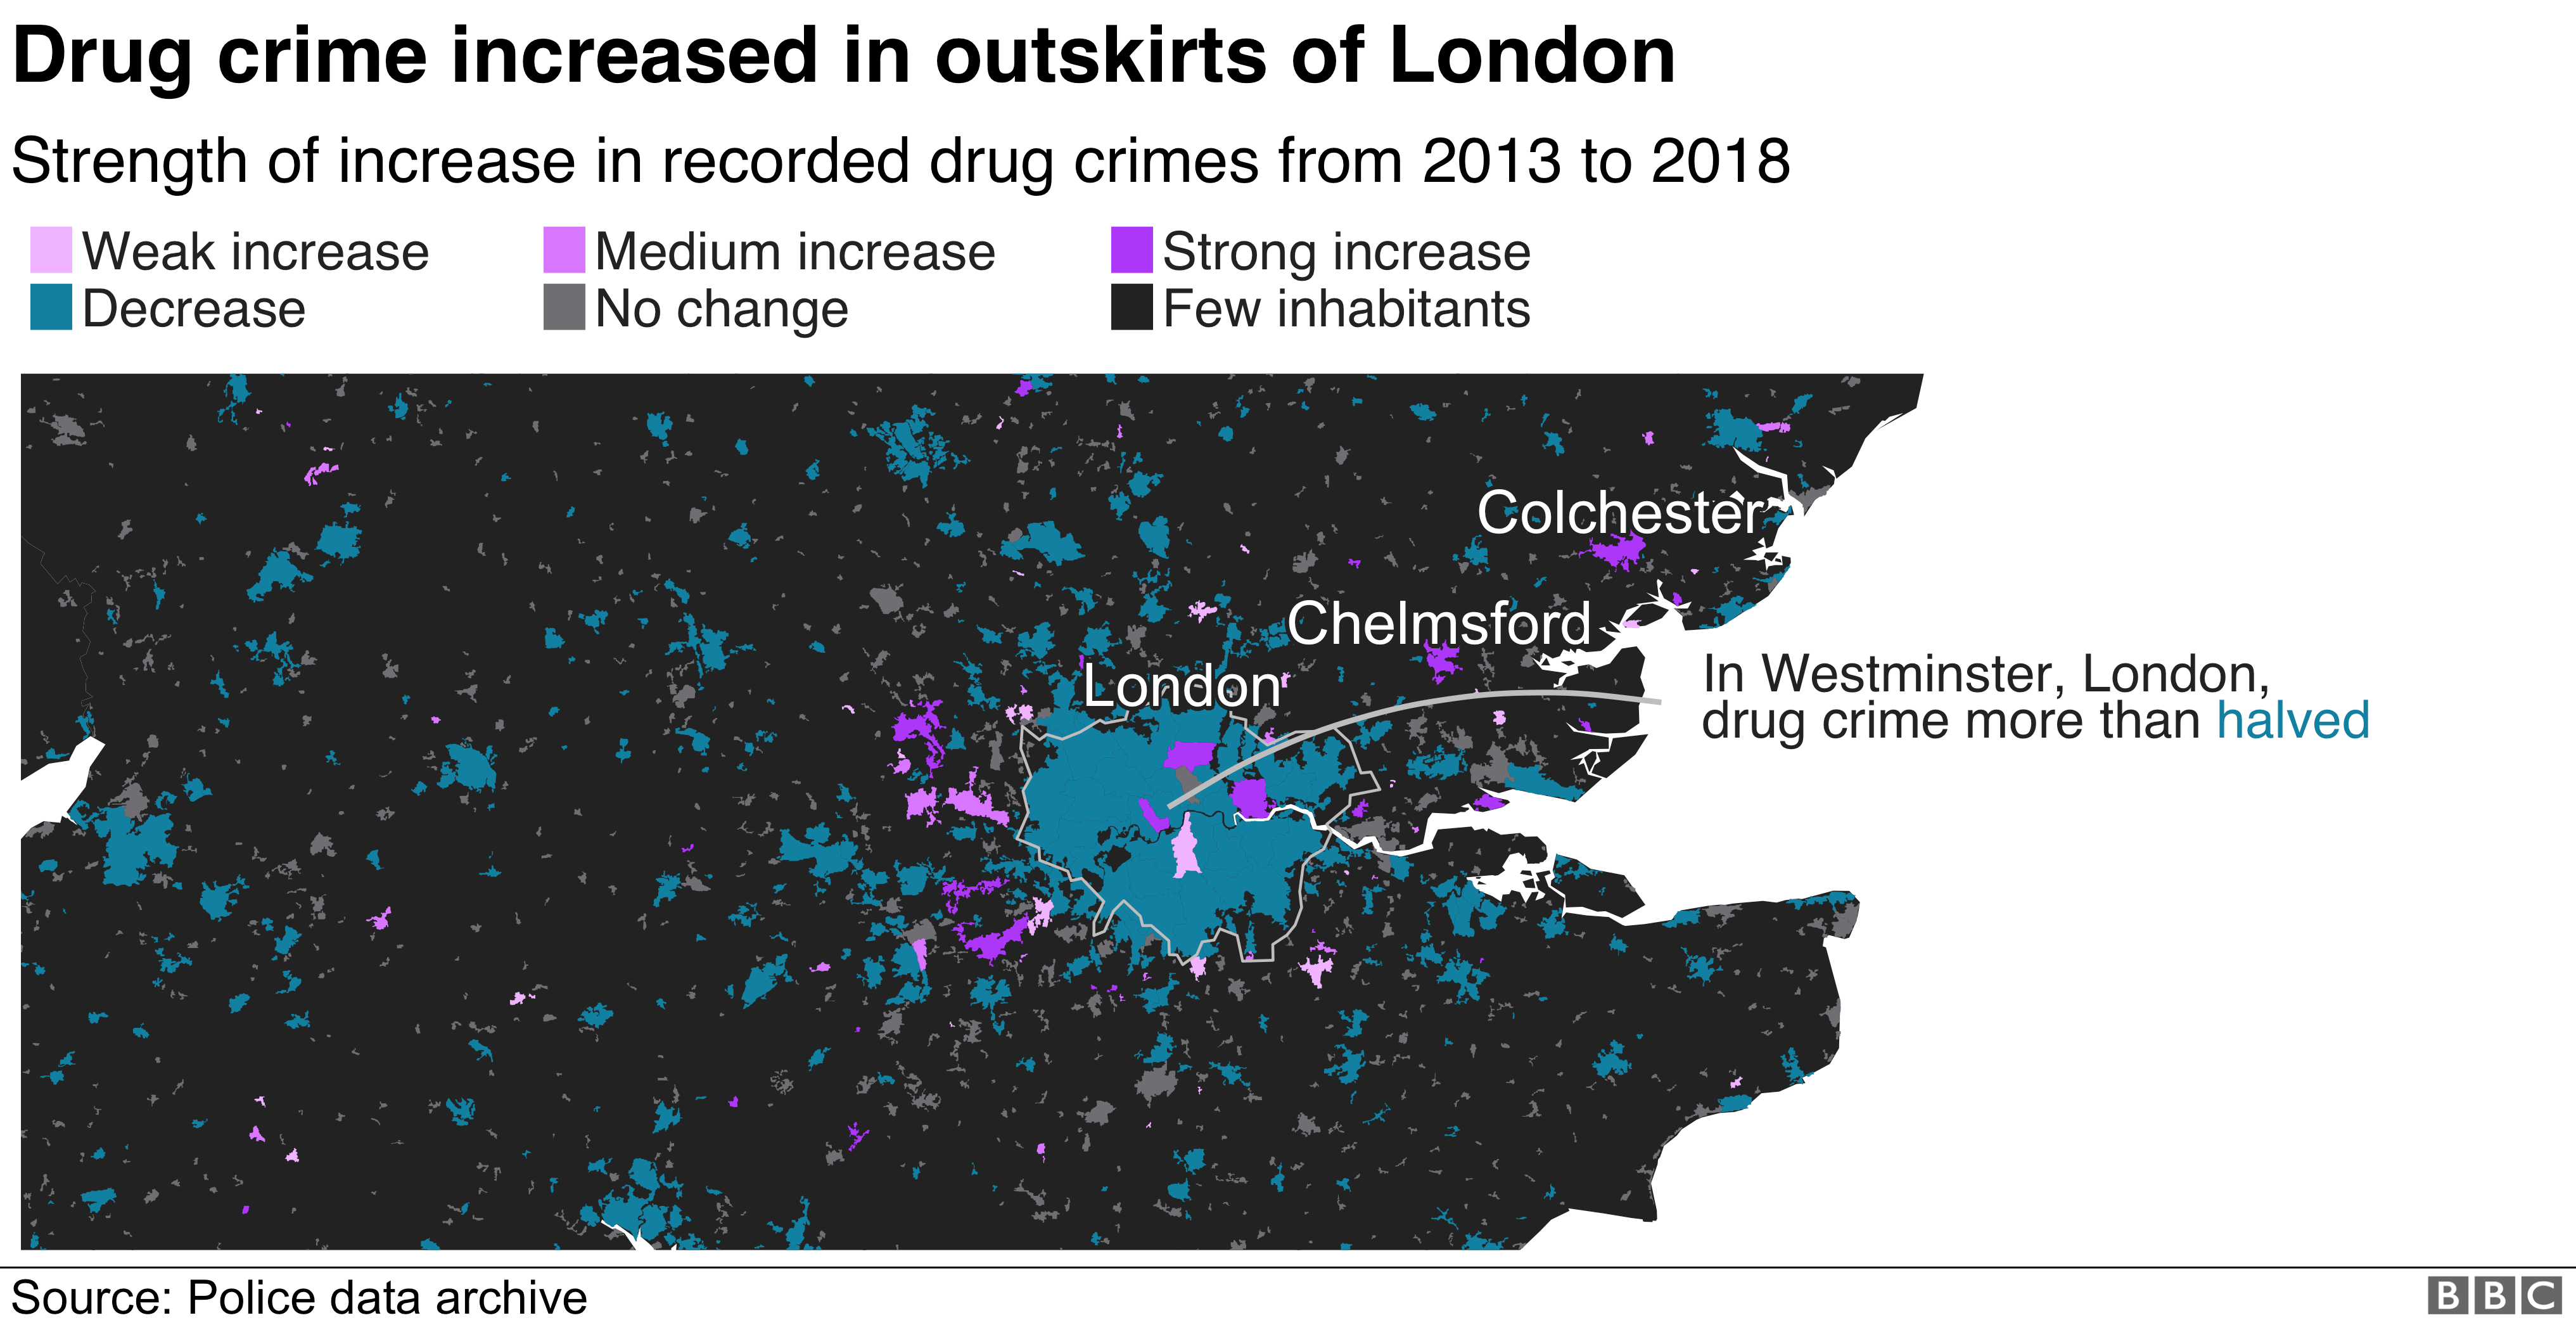 Map showing drug crime in the south east